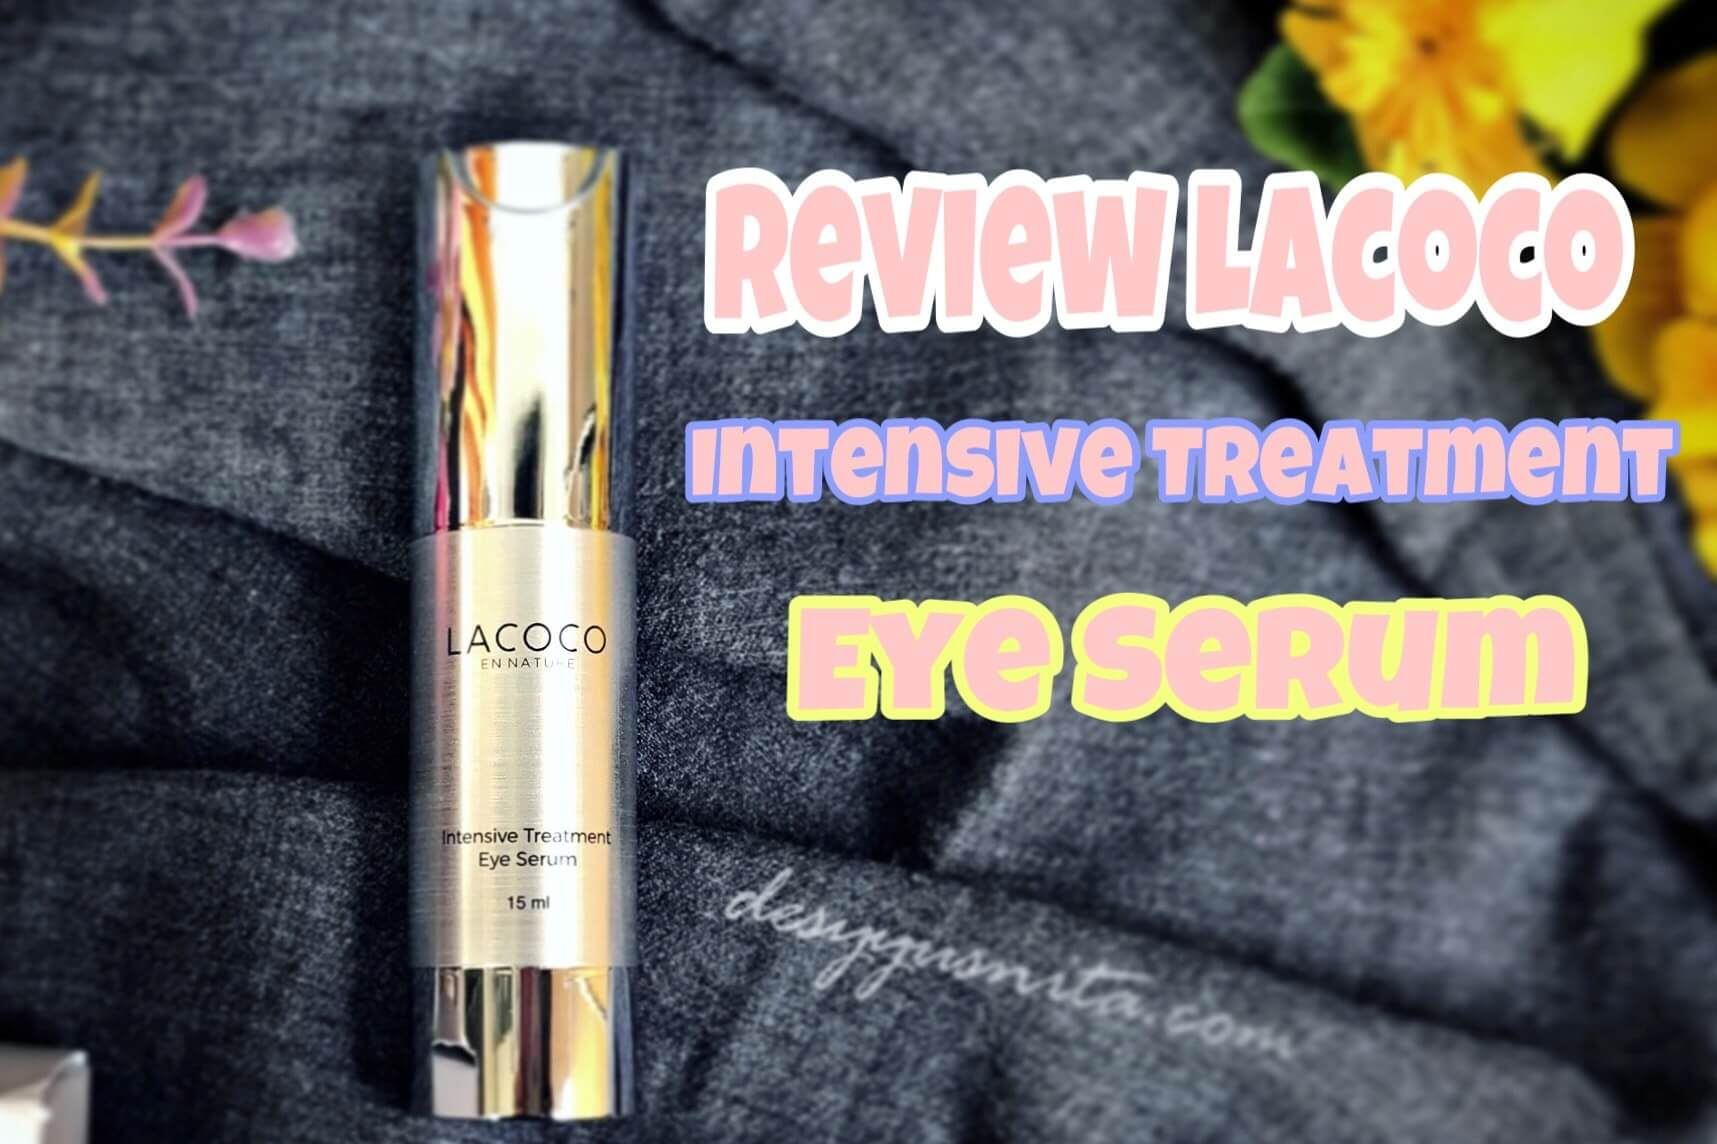 Lacoco, Natural Skincare, Eye Serum, Review Lacoco, Intensive Treatment Eye Serum, Perawatan Daerah Mata, Natural Skincare